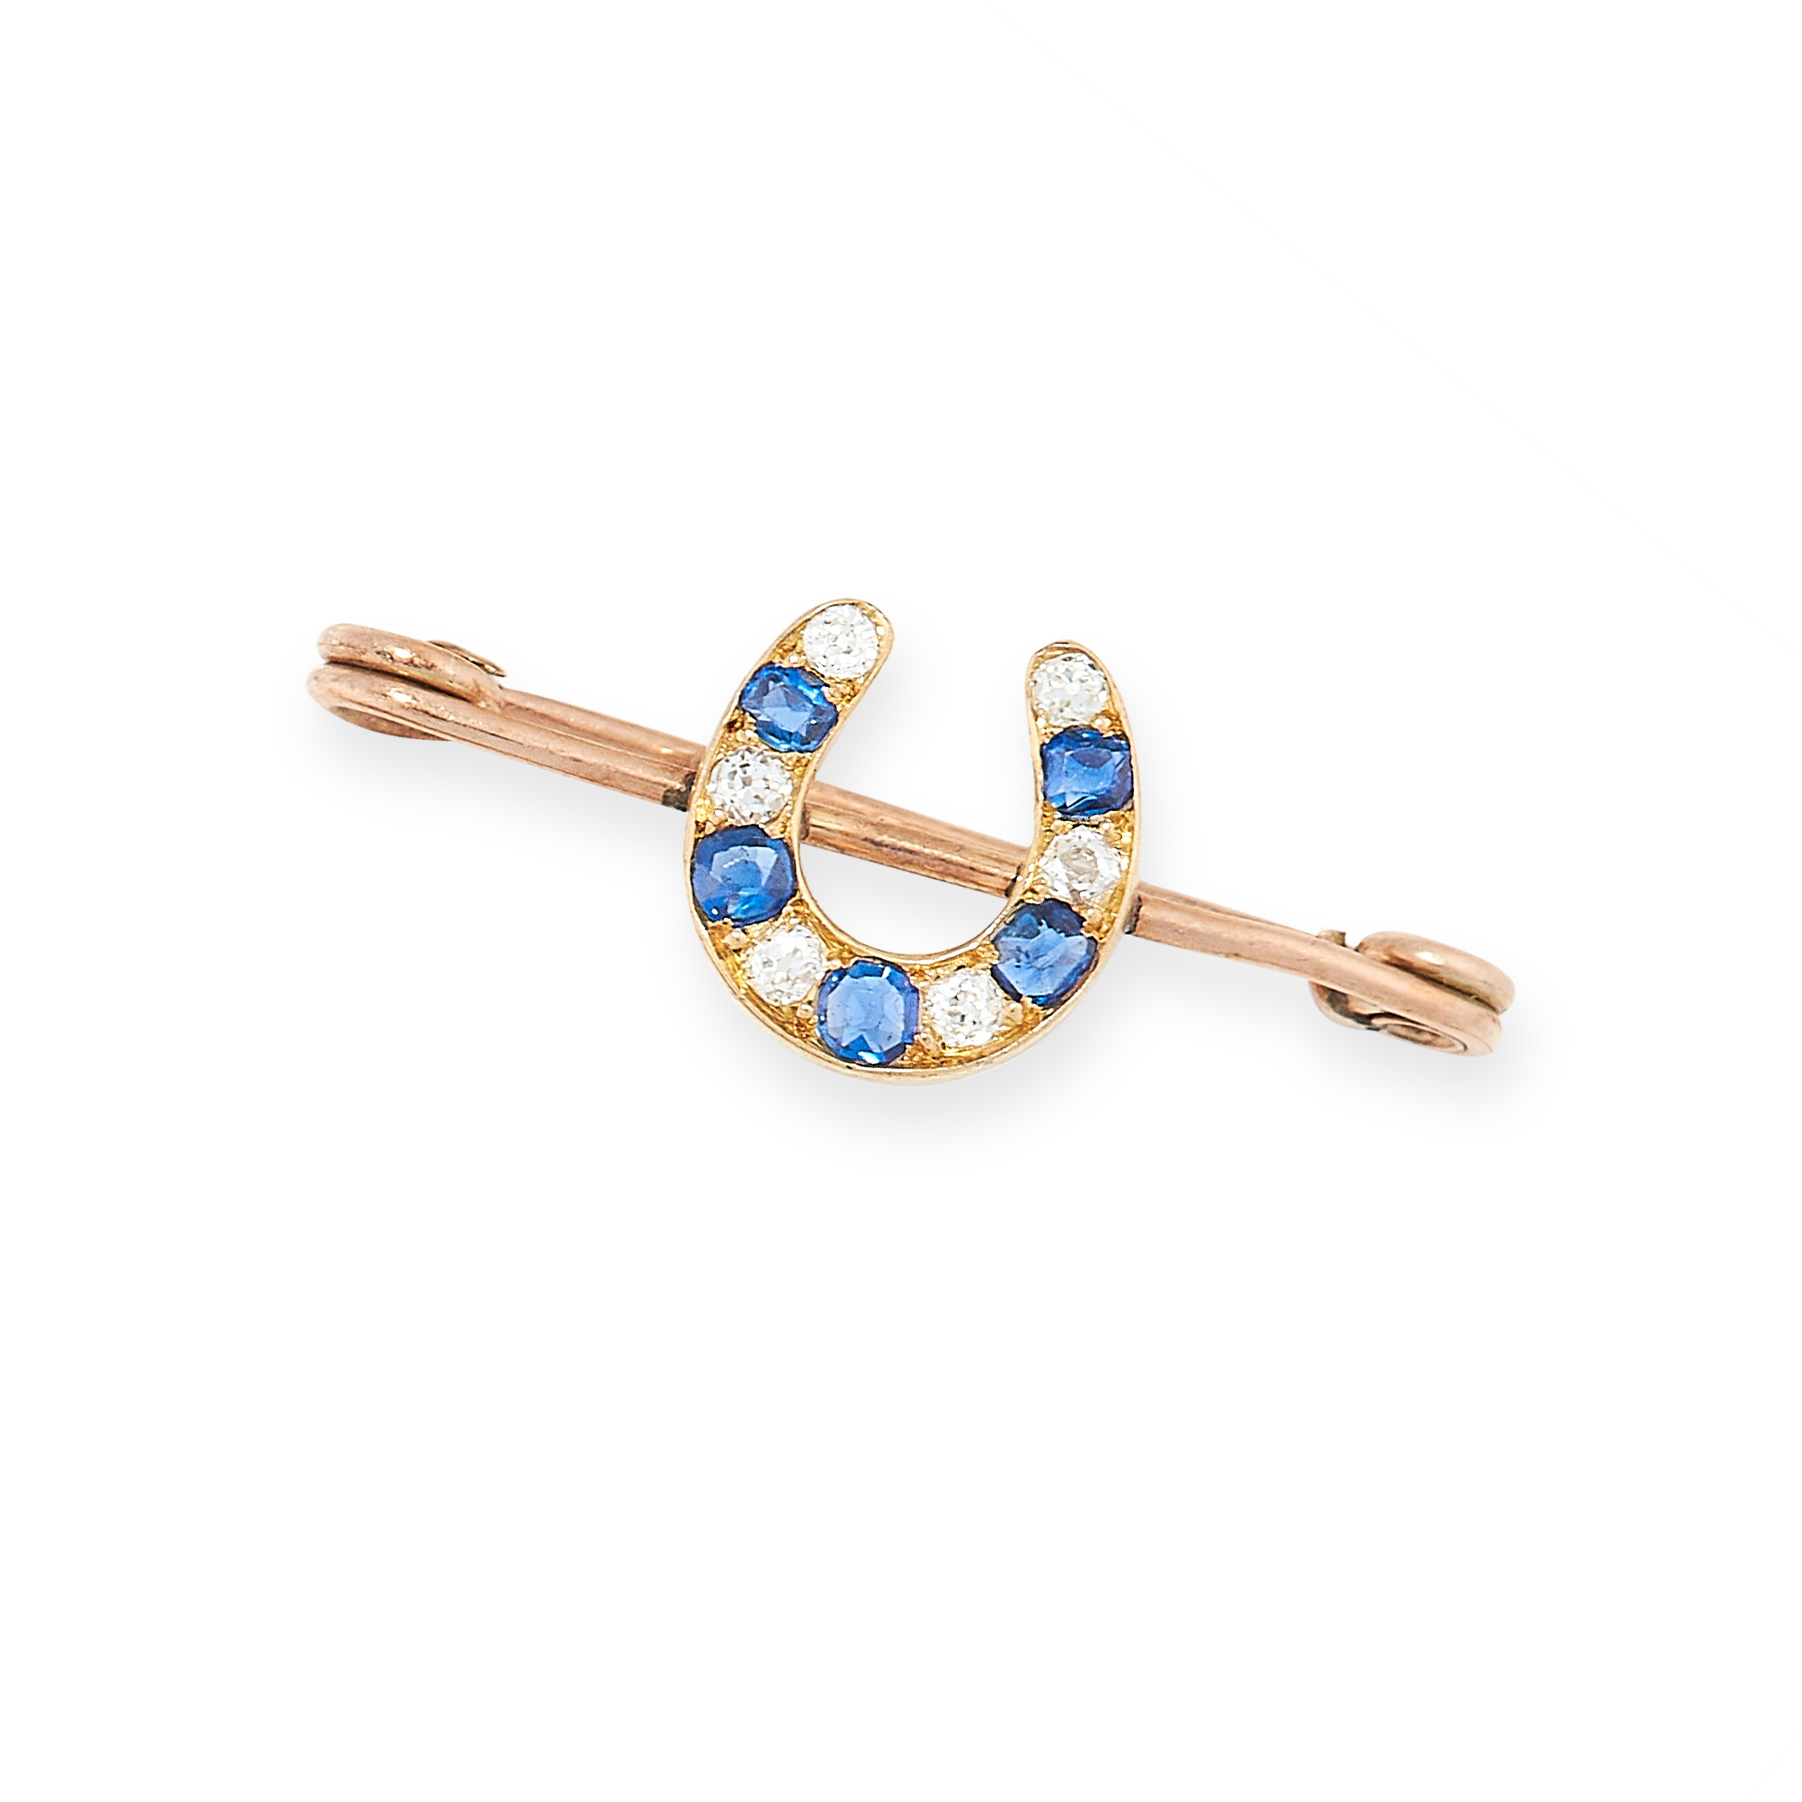 ANTIQUE DIAMOND AND SAPPHIRE HORSESHOE BROOCH in yellow gold, of bar design, set with a horseshoe